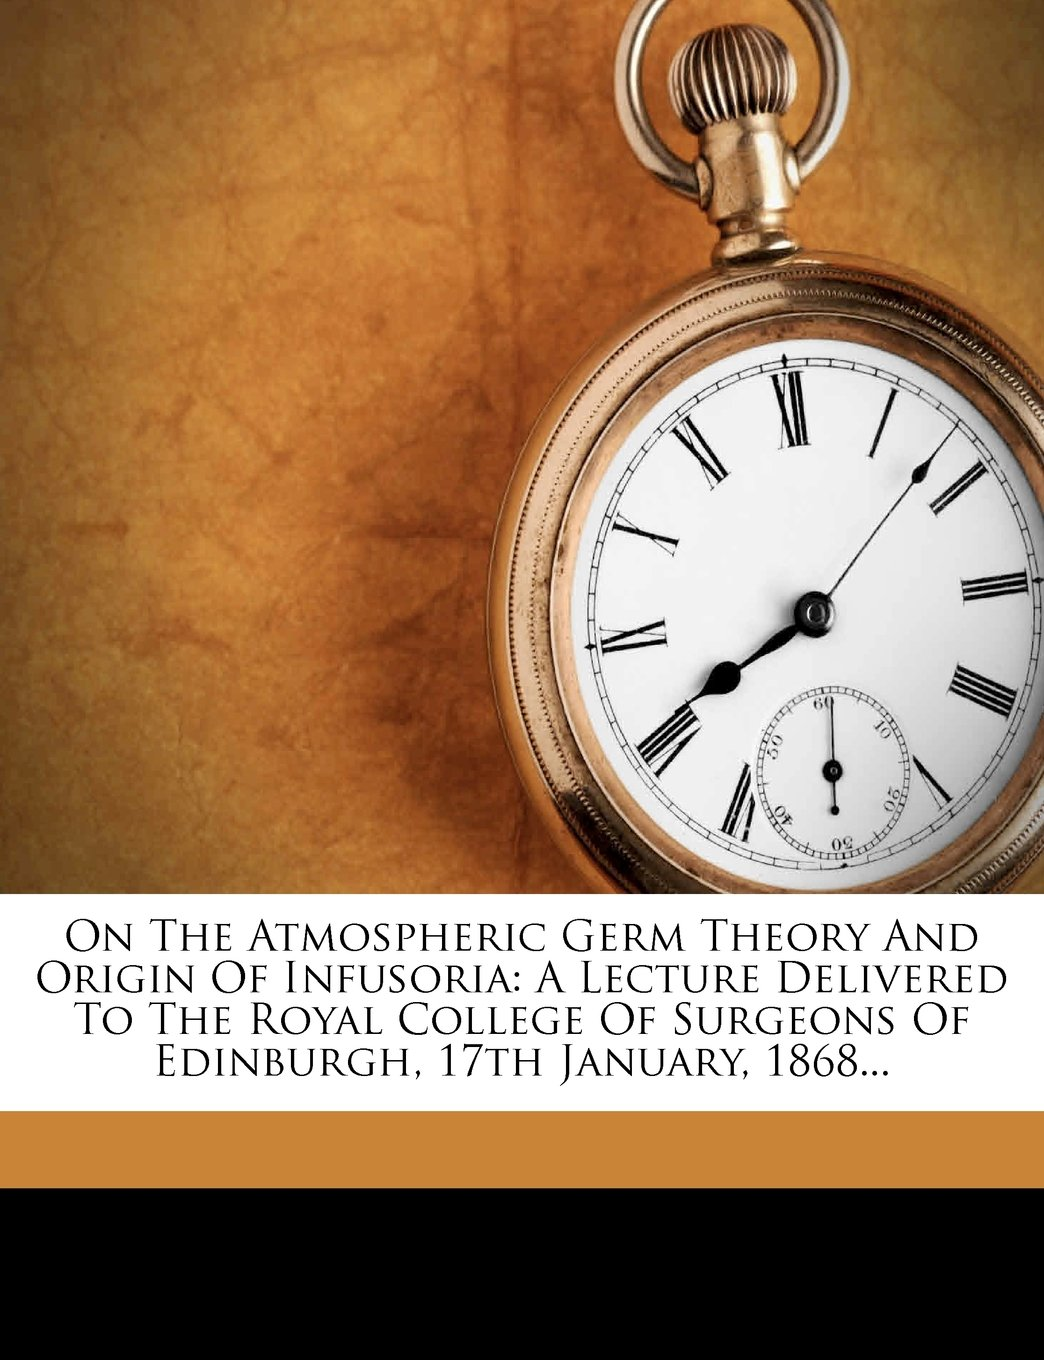 On The Atmospheric Germ Theory And Origin Of Infusoria: A Lecture Delivered To The Royal College Of Surgeons Of Edinburgh, 17th January, 1868... pdf epub